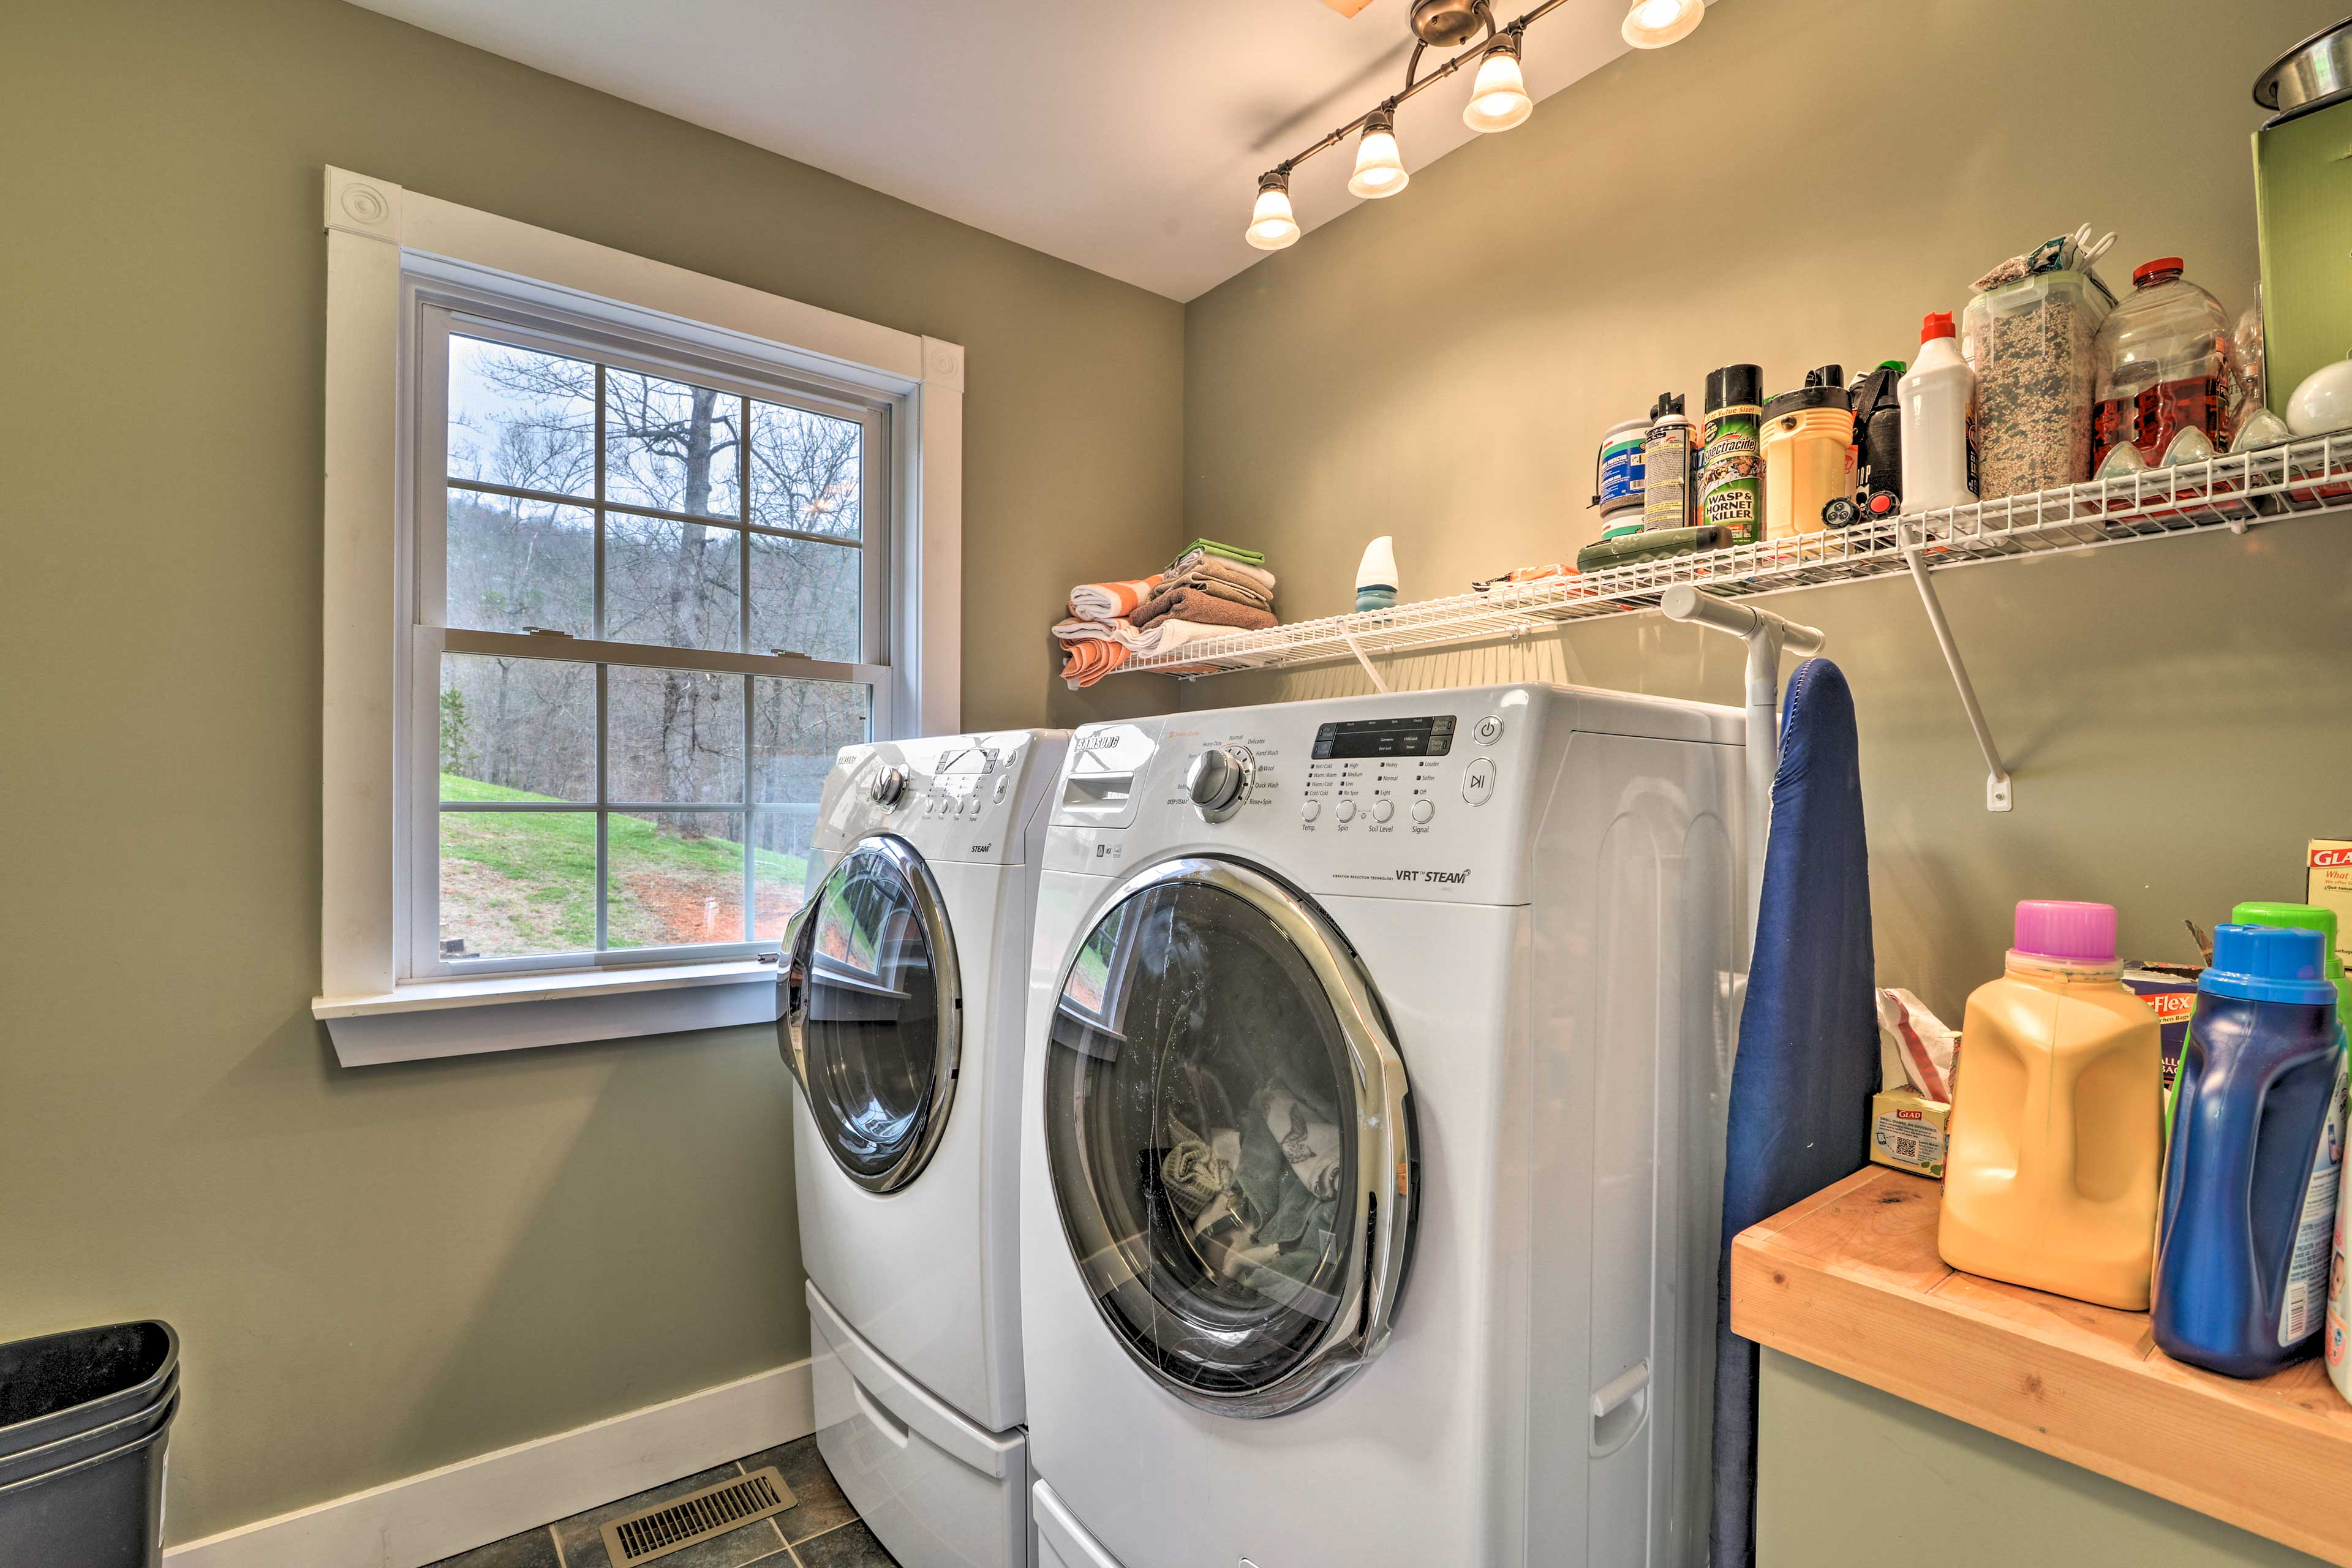 Keep your clothes fresh with the in-unit laundry machines!